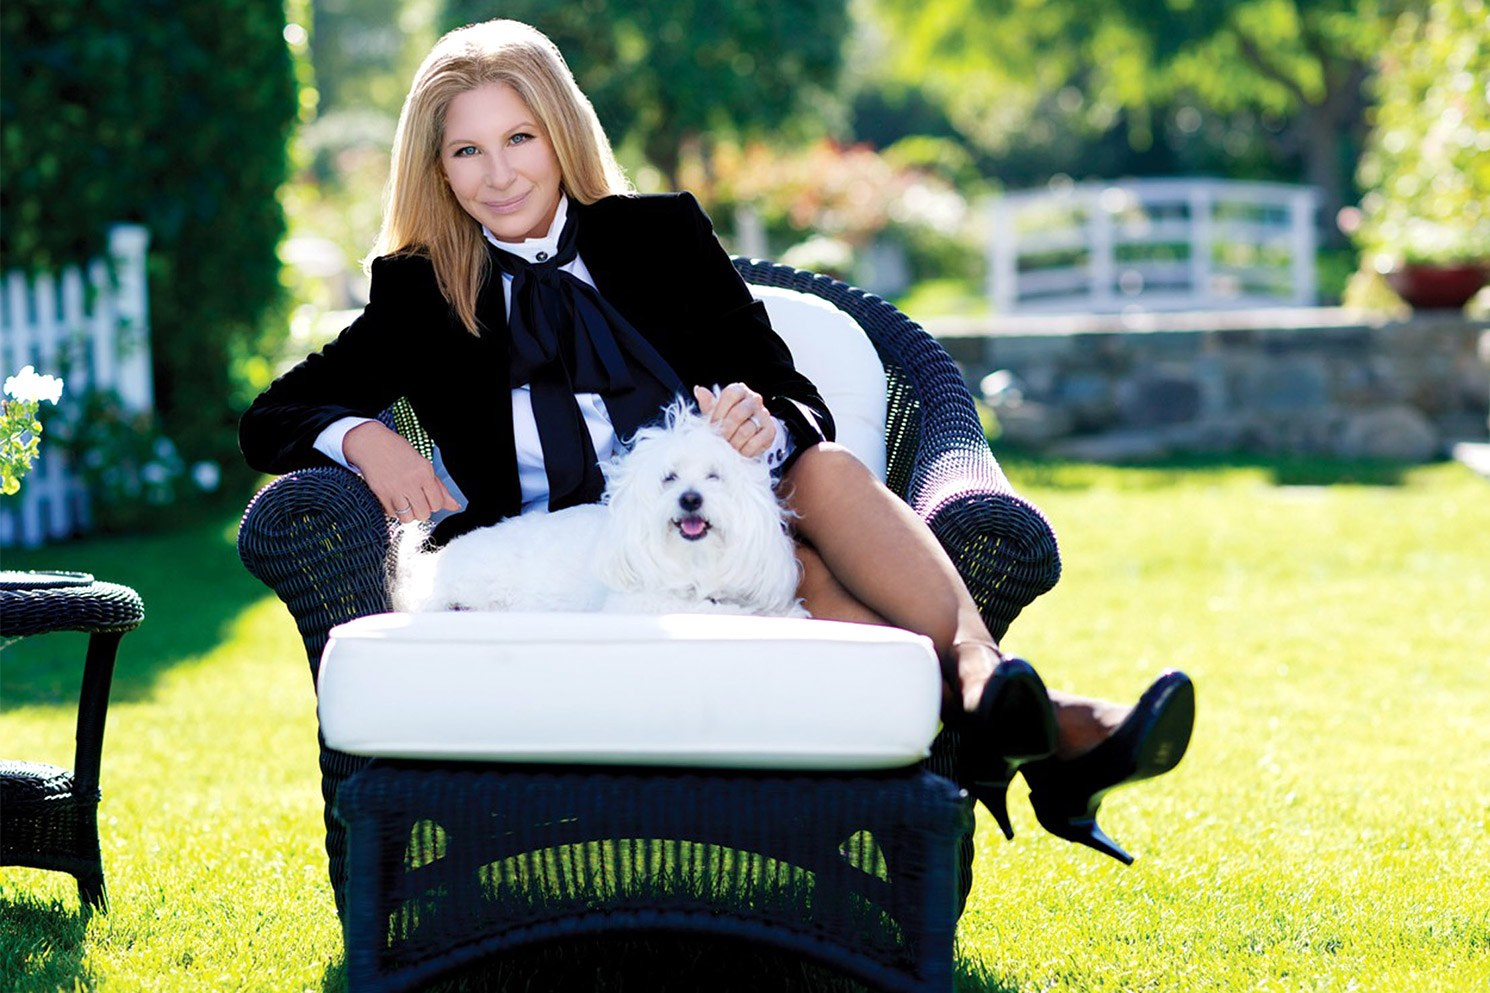 Barbra-Streisand-Dog-Clone